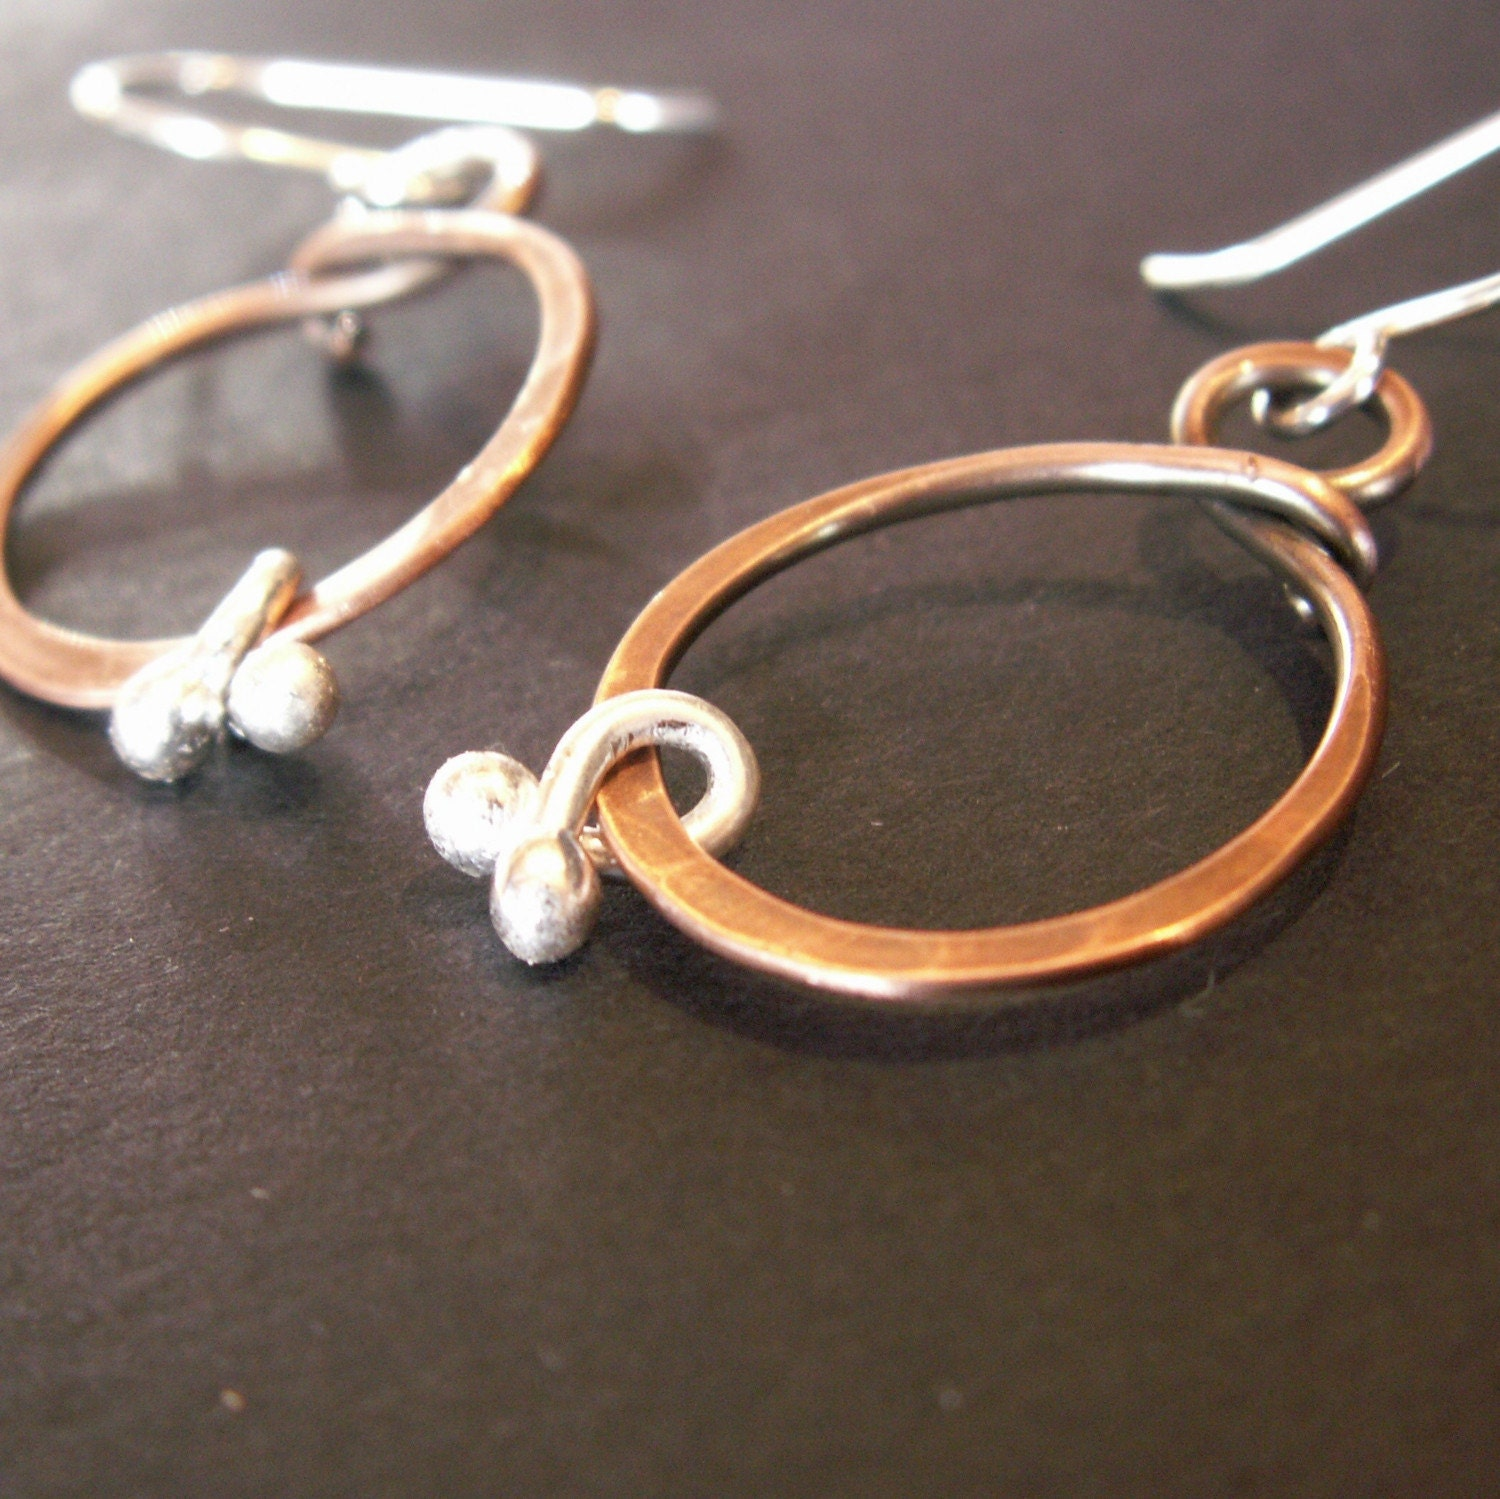 handmade handcrafted jewelry earrings copper sterling silver